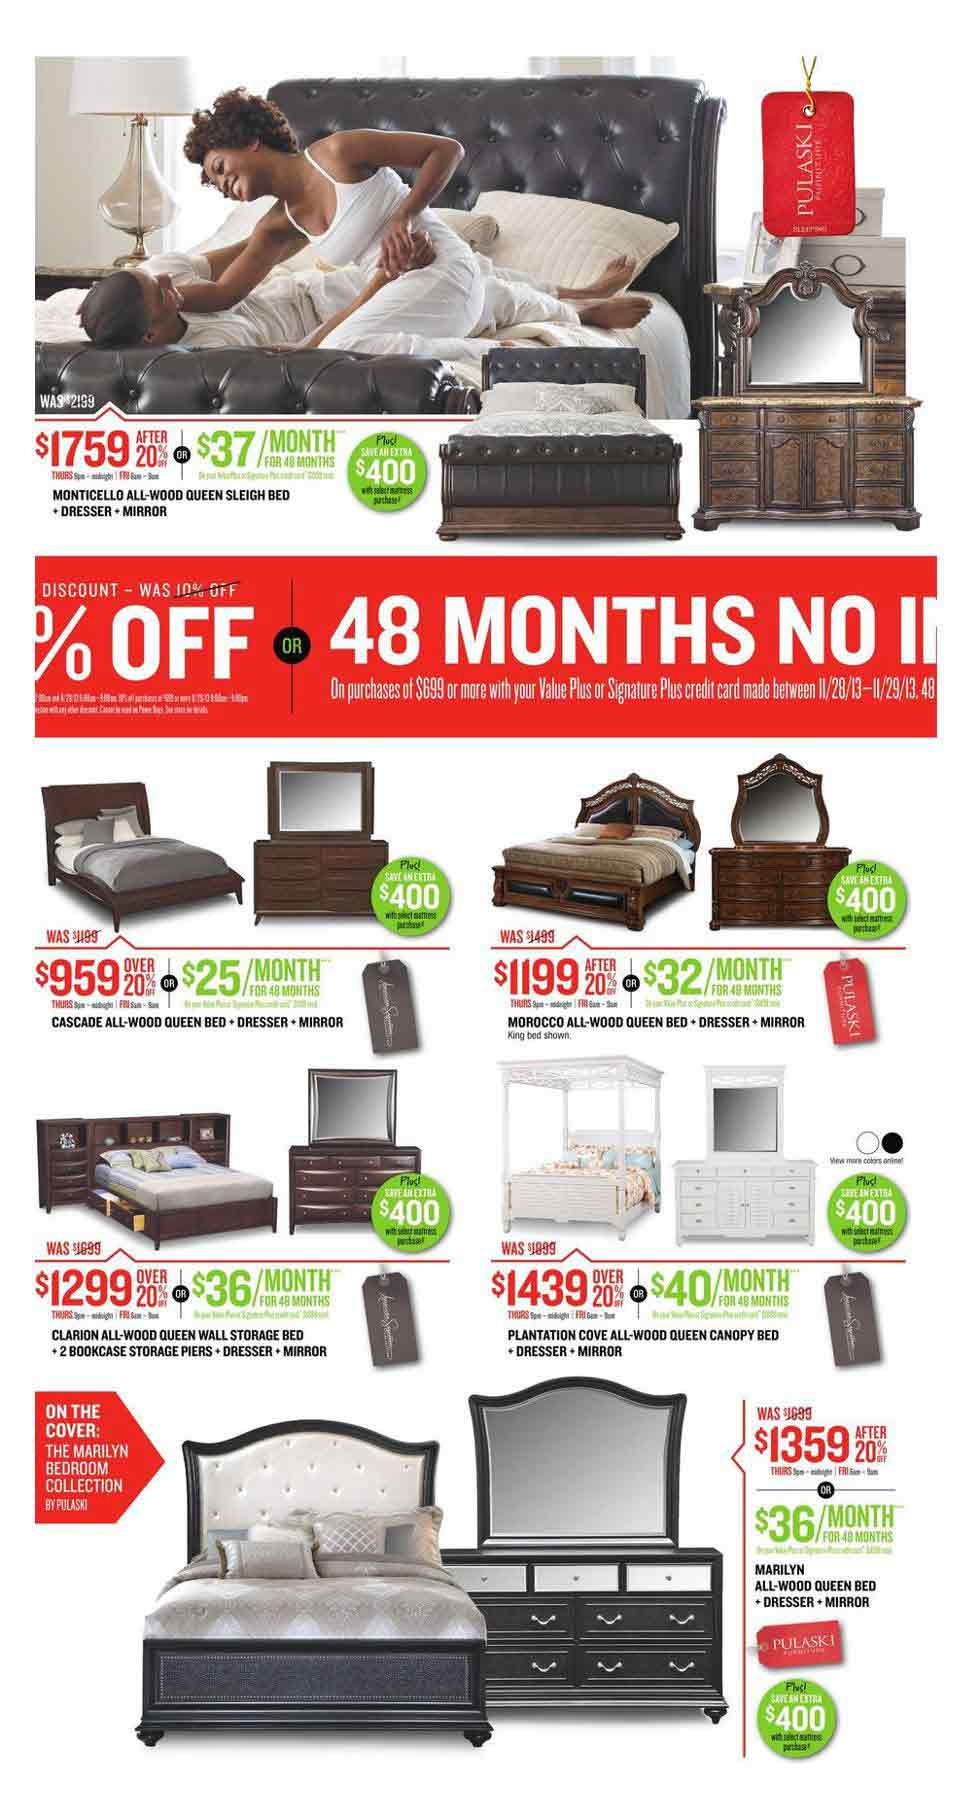 value city black friday 2013 ad find the best value city black friday deals and sales nerdwallet. Black Bedroom Furniture Sets. Home Design Ideas